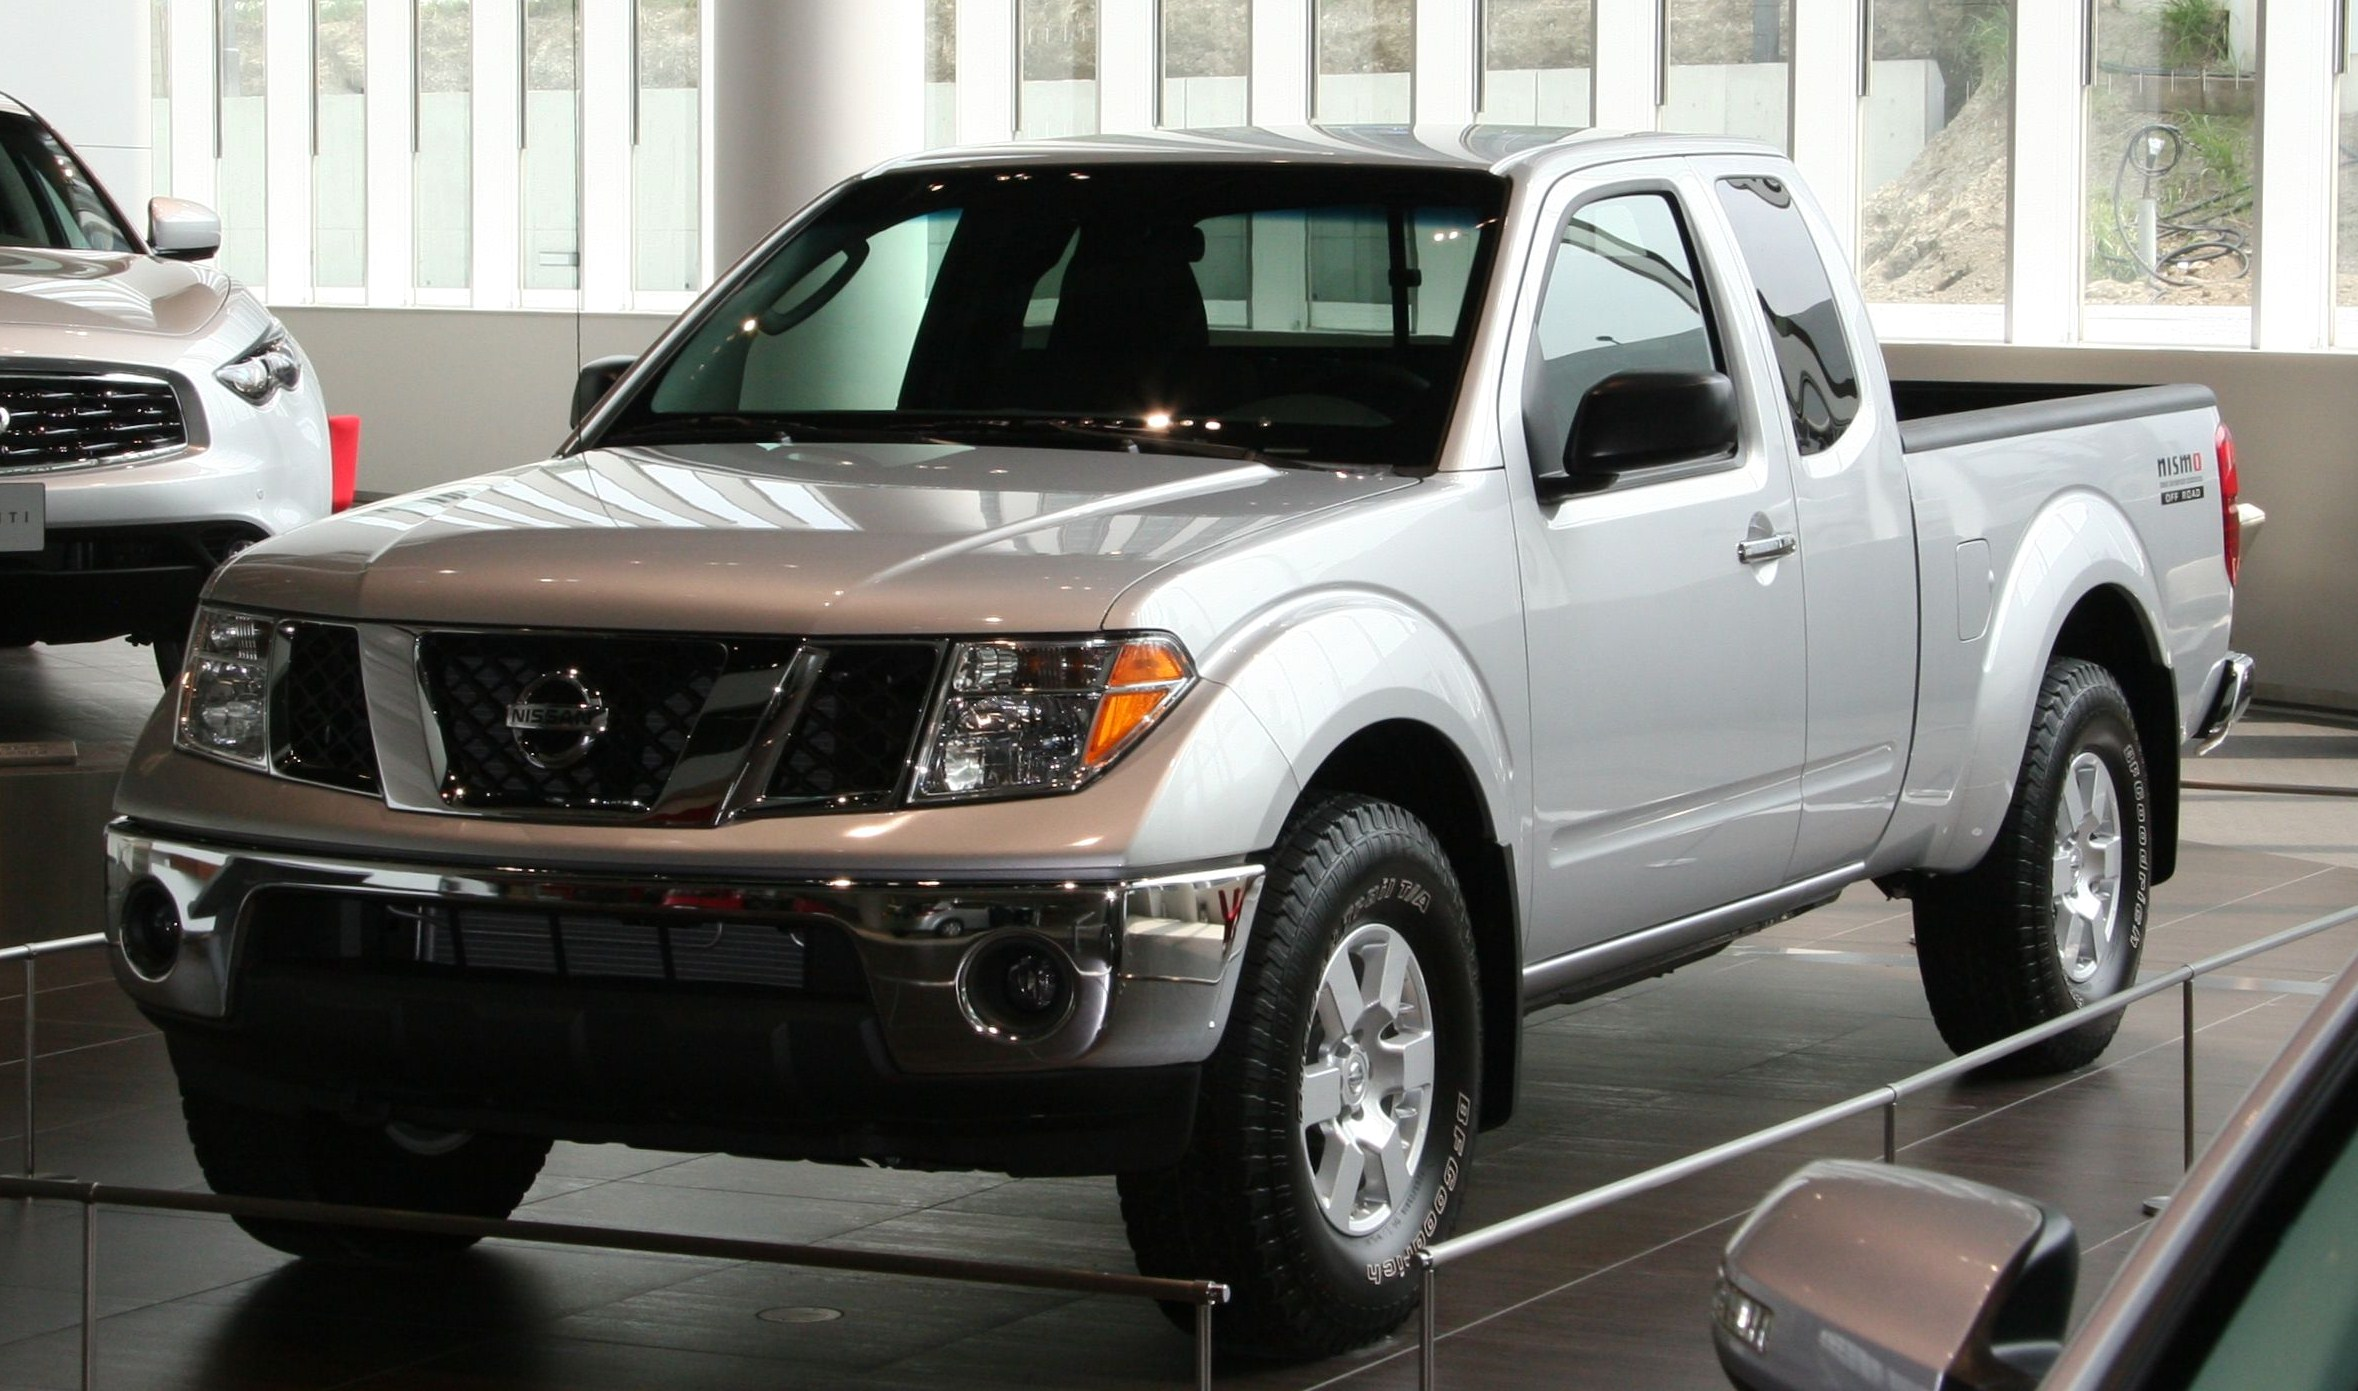 Beautiful File:NISSAN FRONTIER Nismo King Cab